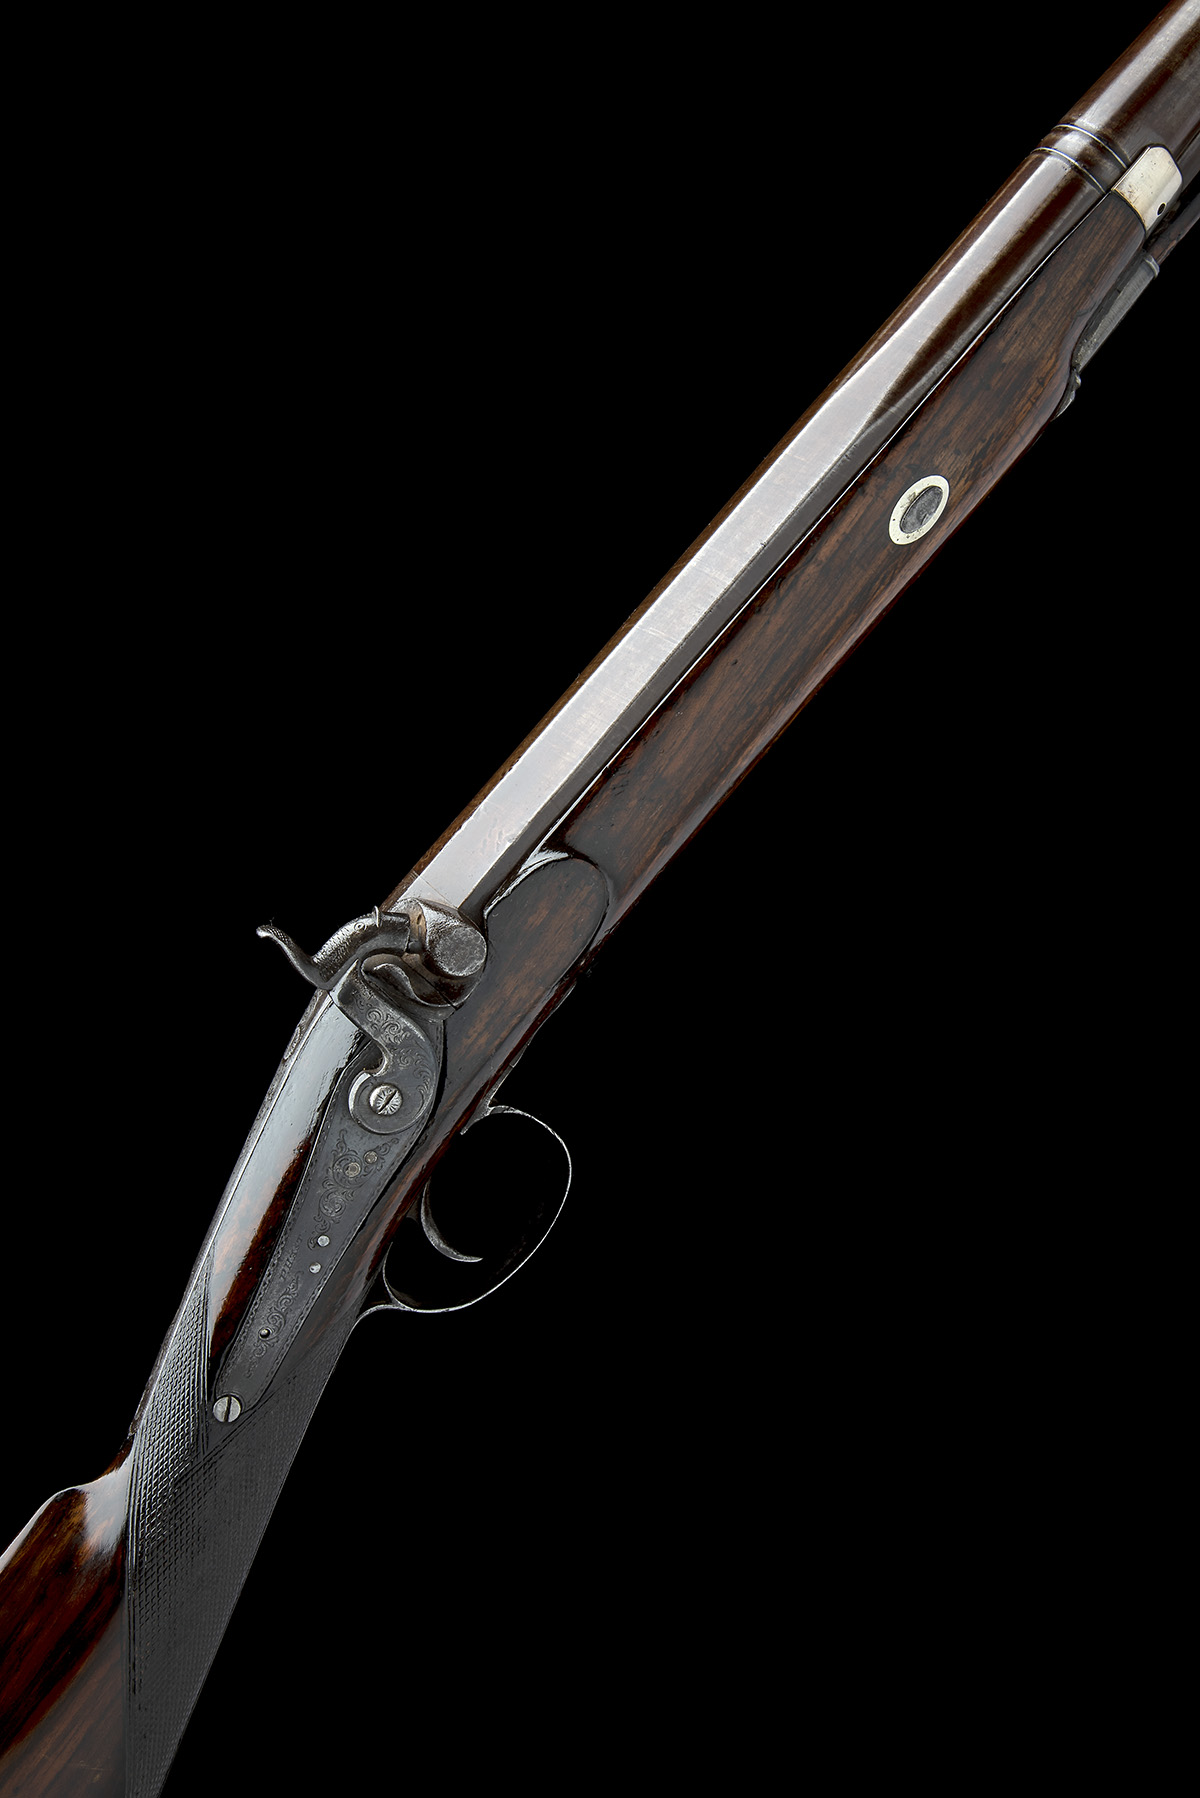 P. HAST, COLCHESTER A 9-BORE PERCUSSION SINGLE-BARRELLED FOWLING-PIECE, no visible serial number,